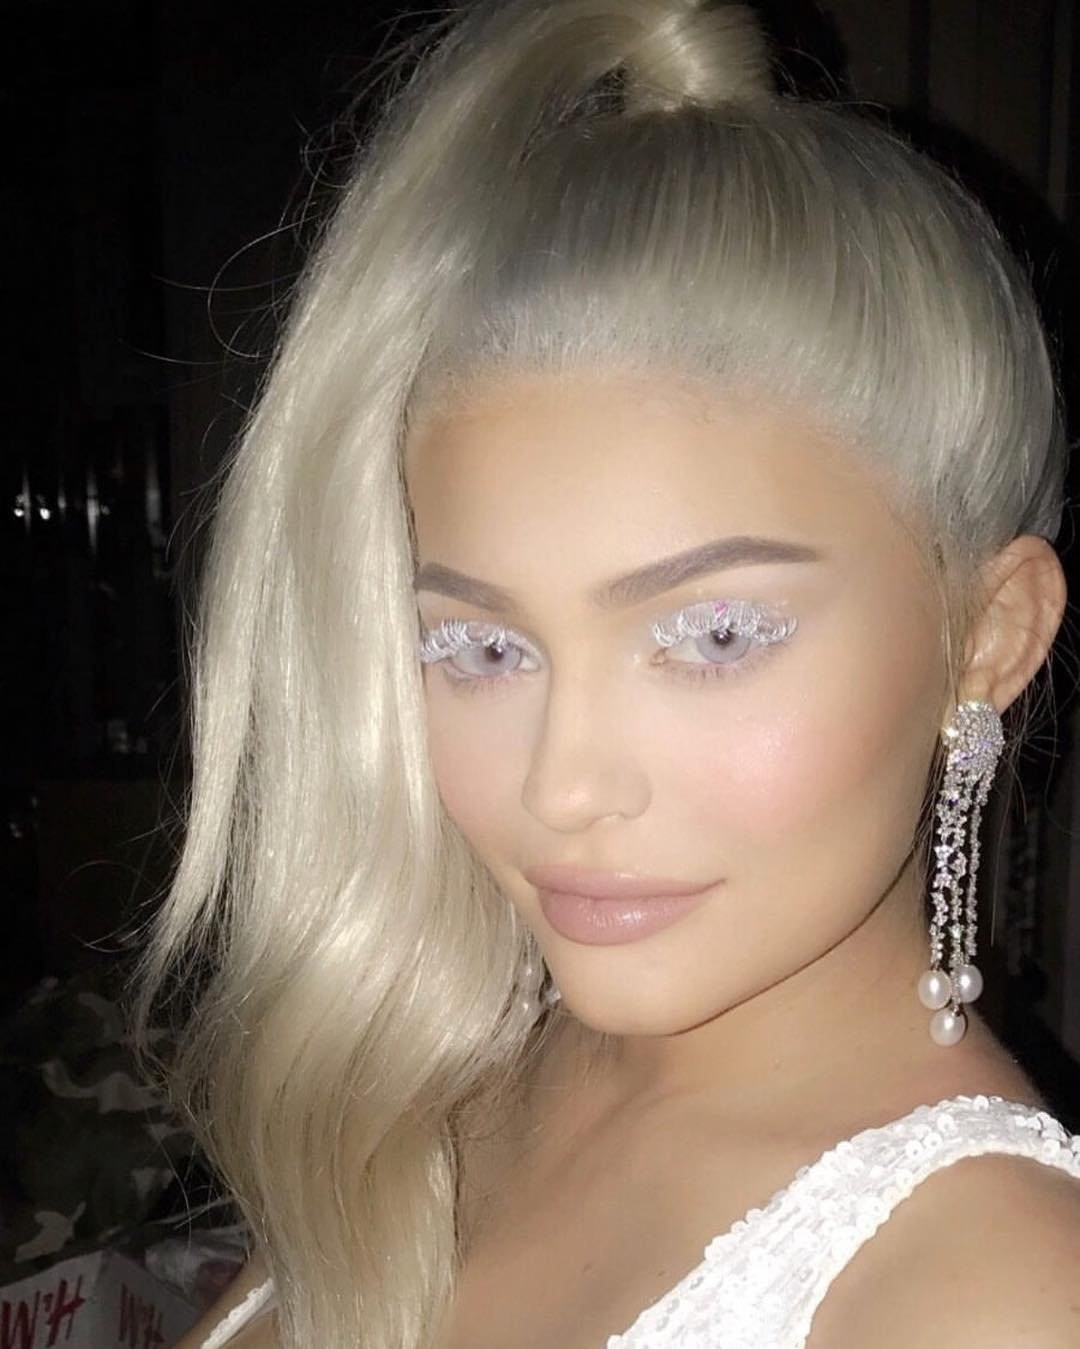 """Ice Queen -  With bestie Jordyn Woods  by her side in a fire-inspired costume, Kylie resembles """"ice"""" with a platinum blonde ponytail and eyelashes to match during Halloween 2017."""